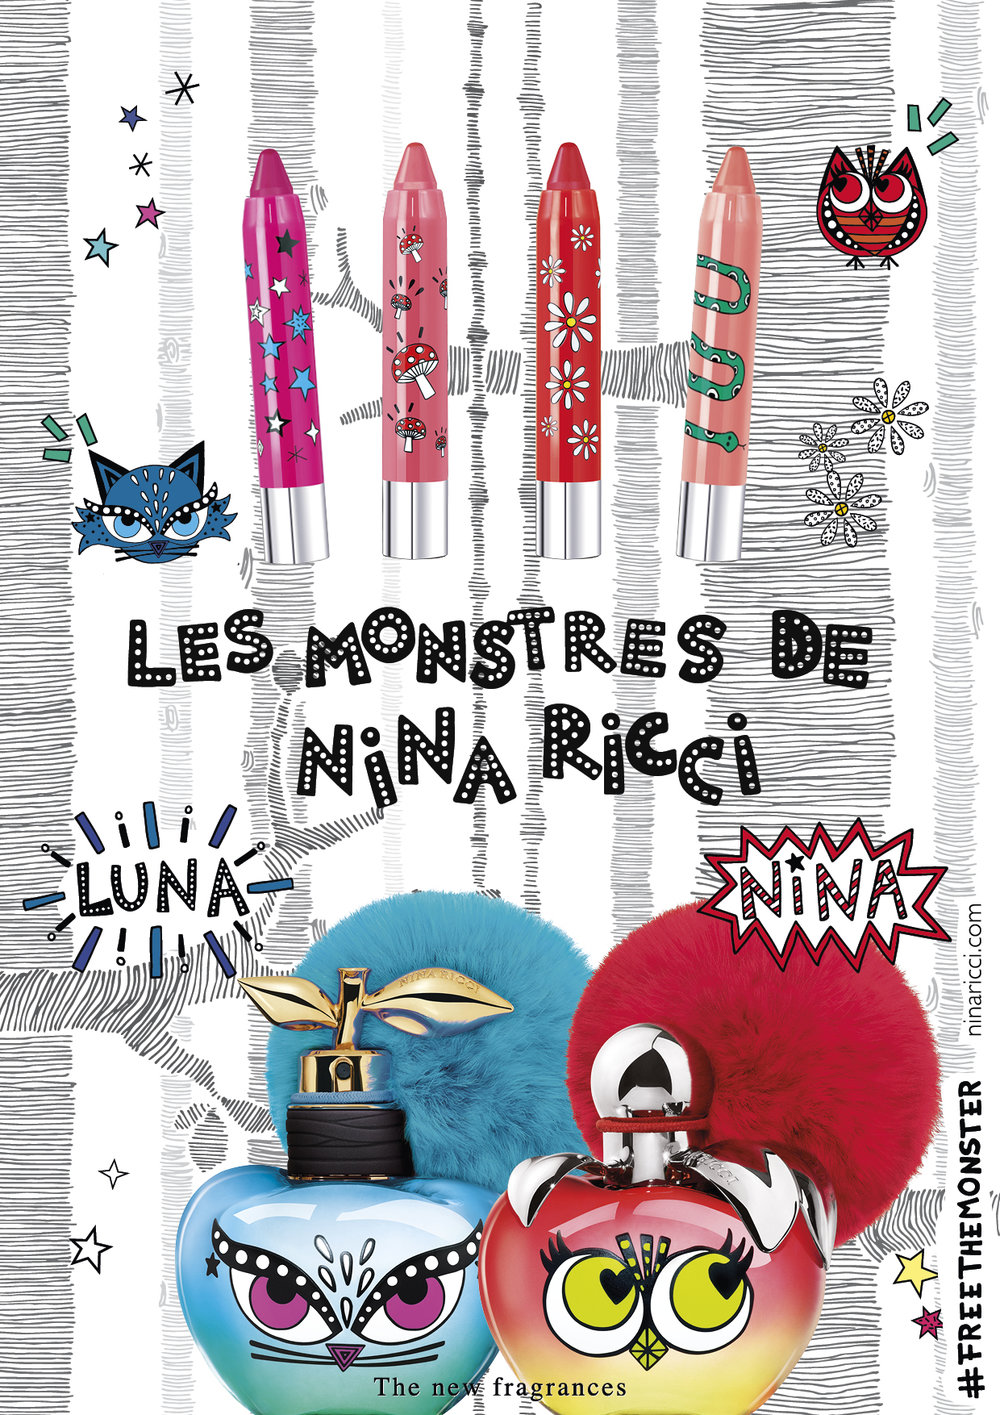 SP_MONSTERS 2018_AD CAMPAIGN_STILL LIFE_NINA LUNA LIPSTICKS_BD.jpg